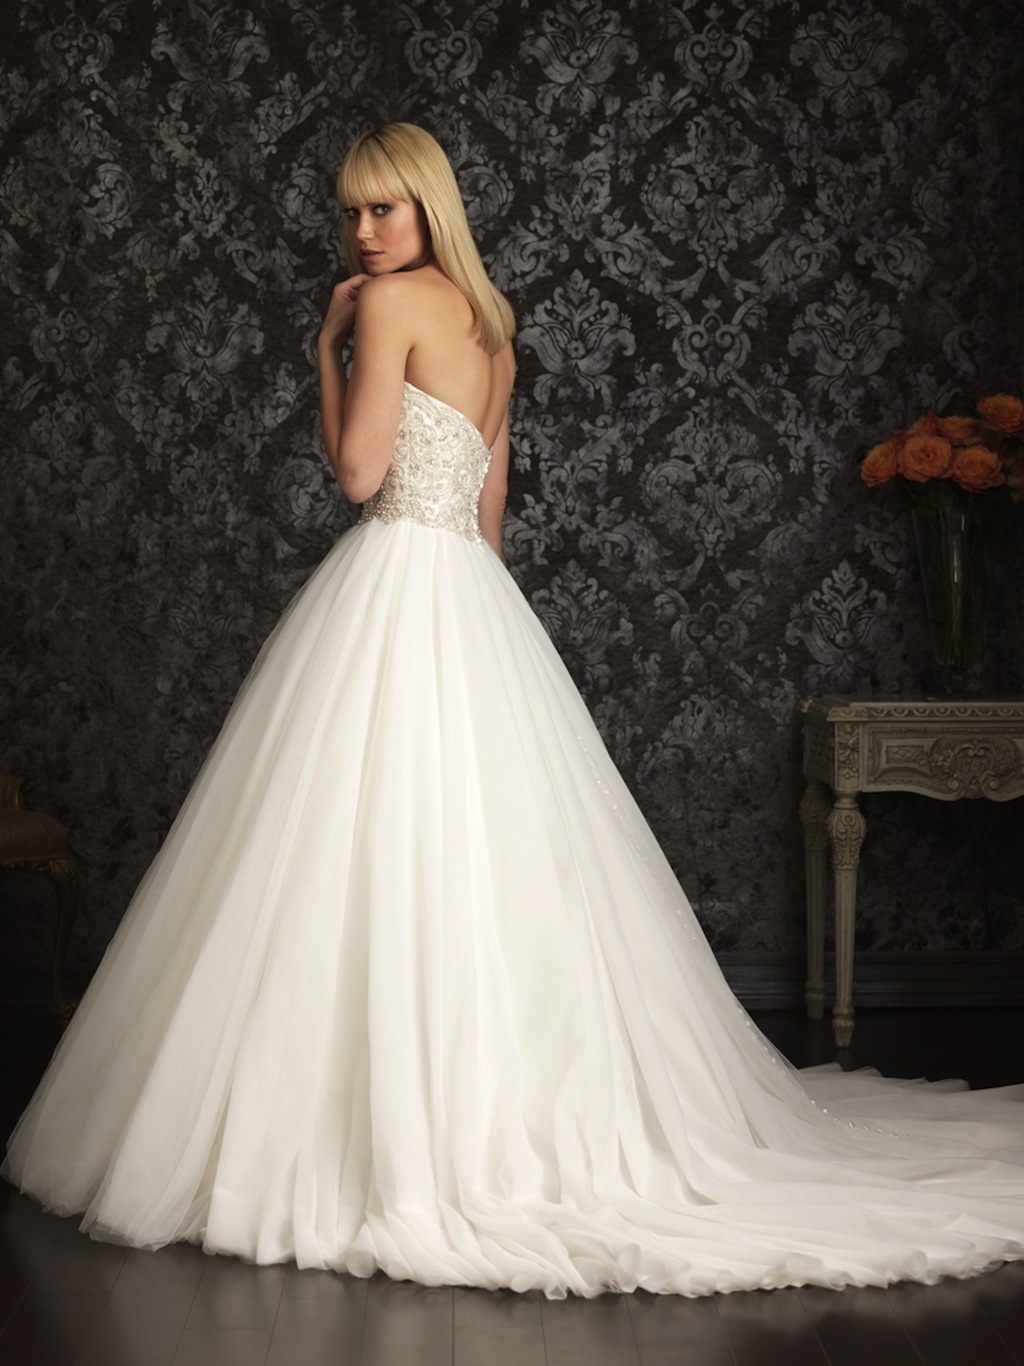 Allure-bridals-wedding-dress-bridal-gown-allure-collection-2013-9006b-2.full